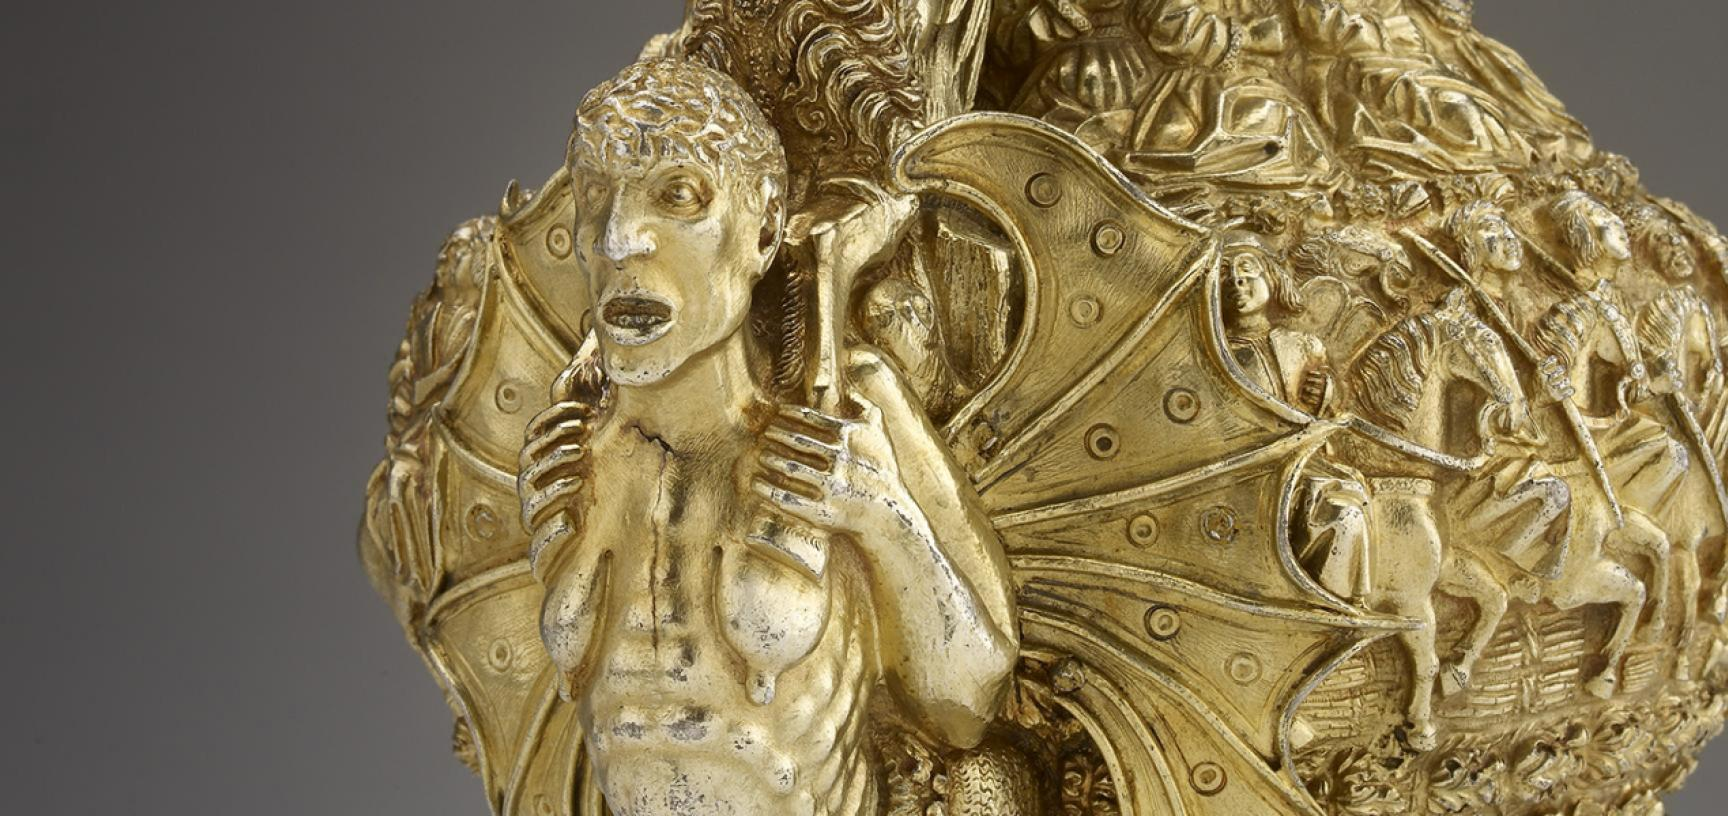 PORTUGUESE GILT EWER from the Ashmolean collections (detail)